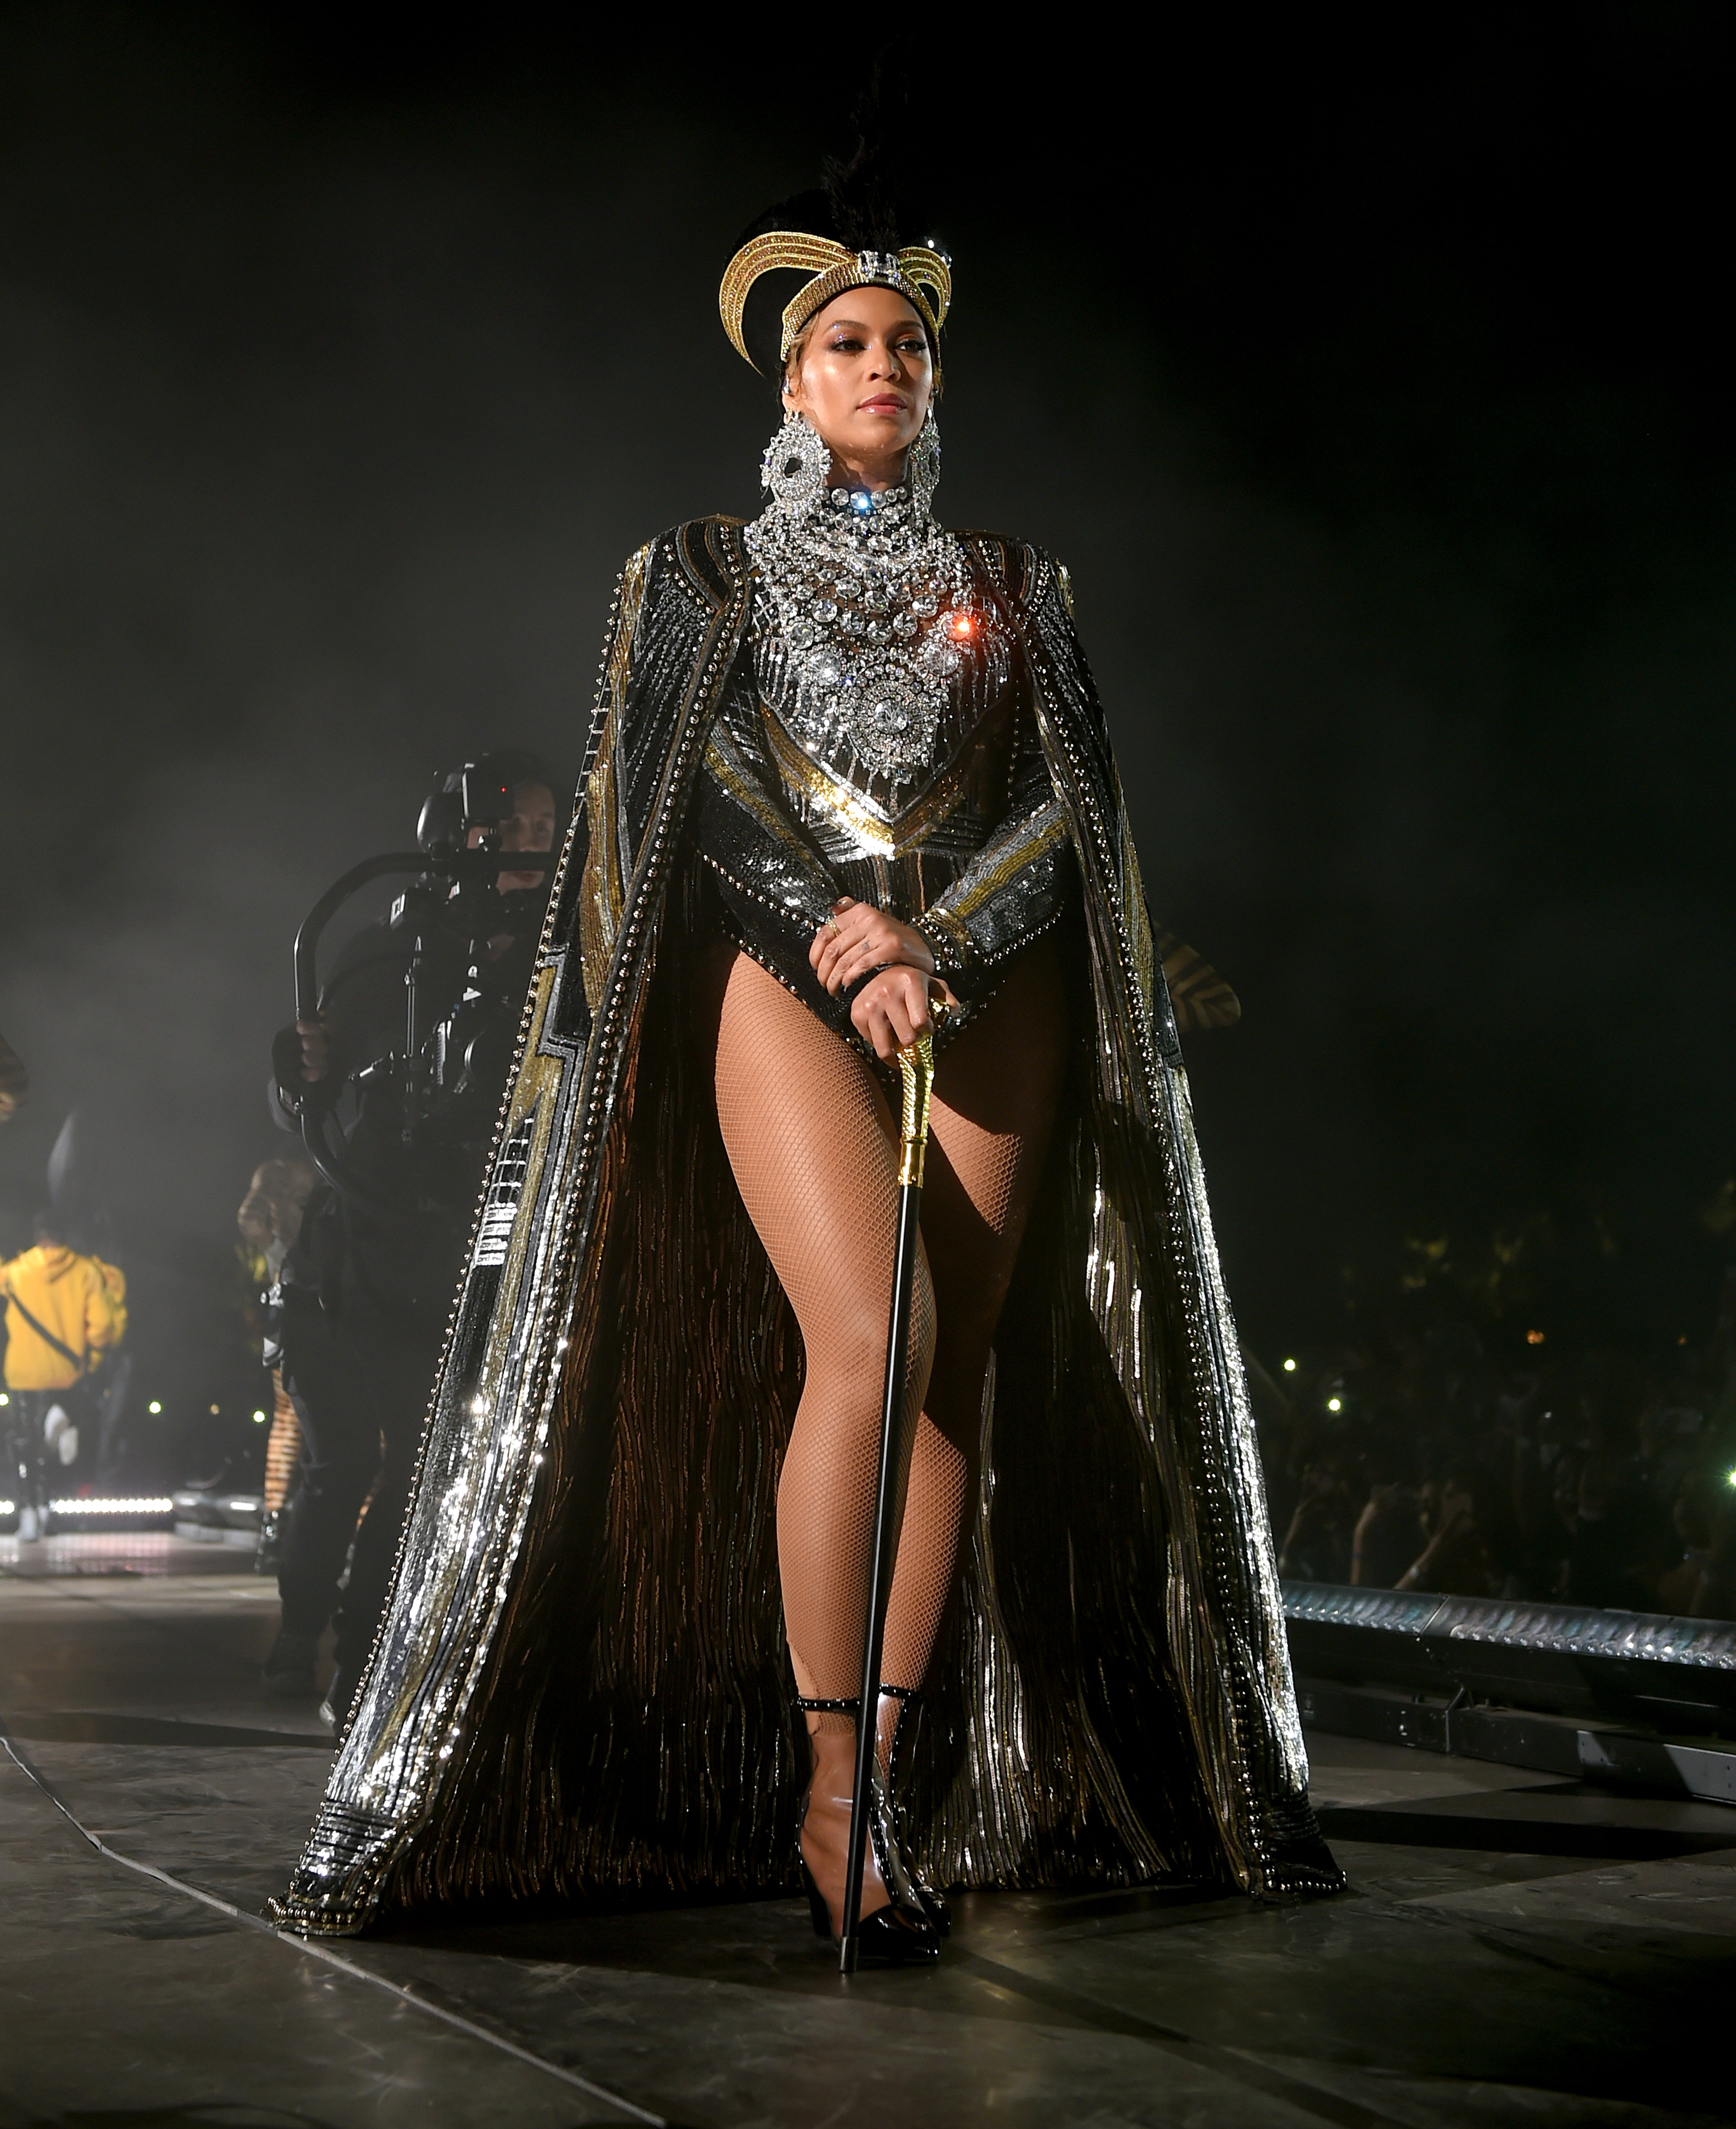 Beyonce Knowles performs onstage during 2018 Coachella Valley Music And Arts Festival Weekend 1 at the Empire Polo Field on April 14, 2018 in Indio, Calif